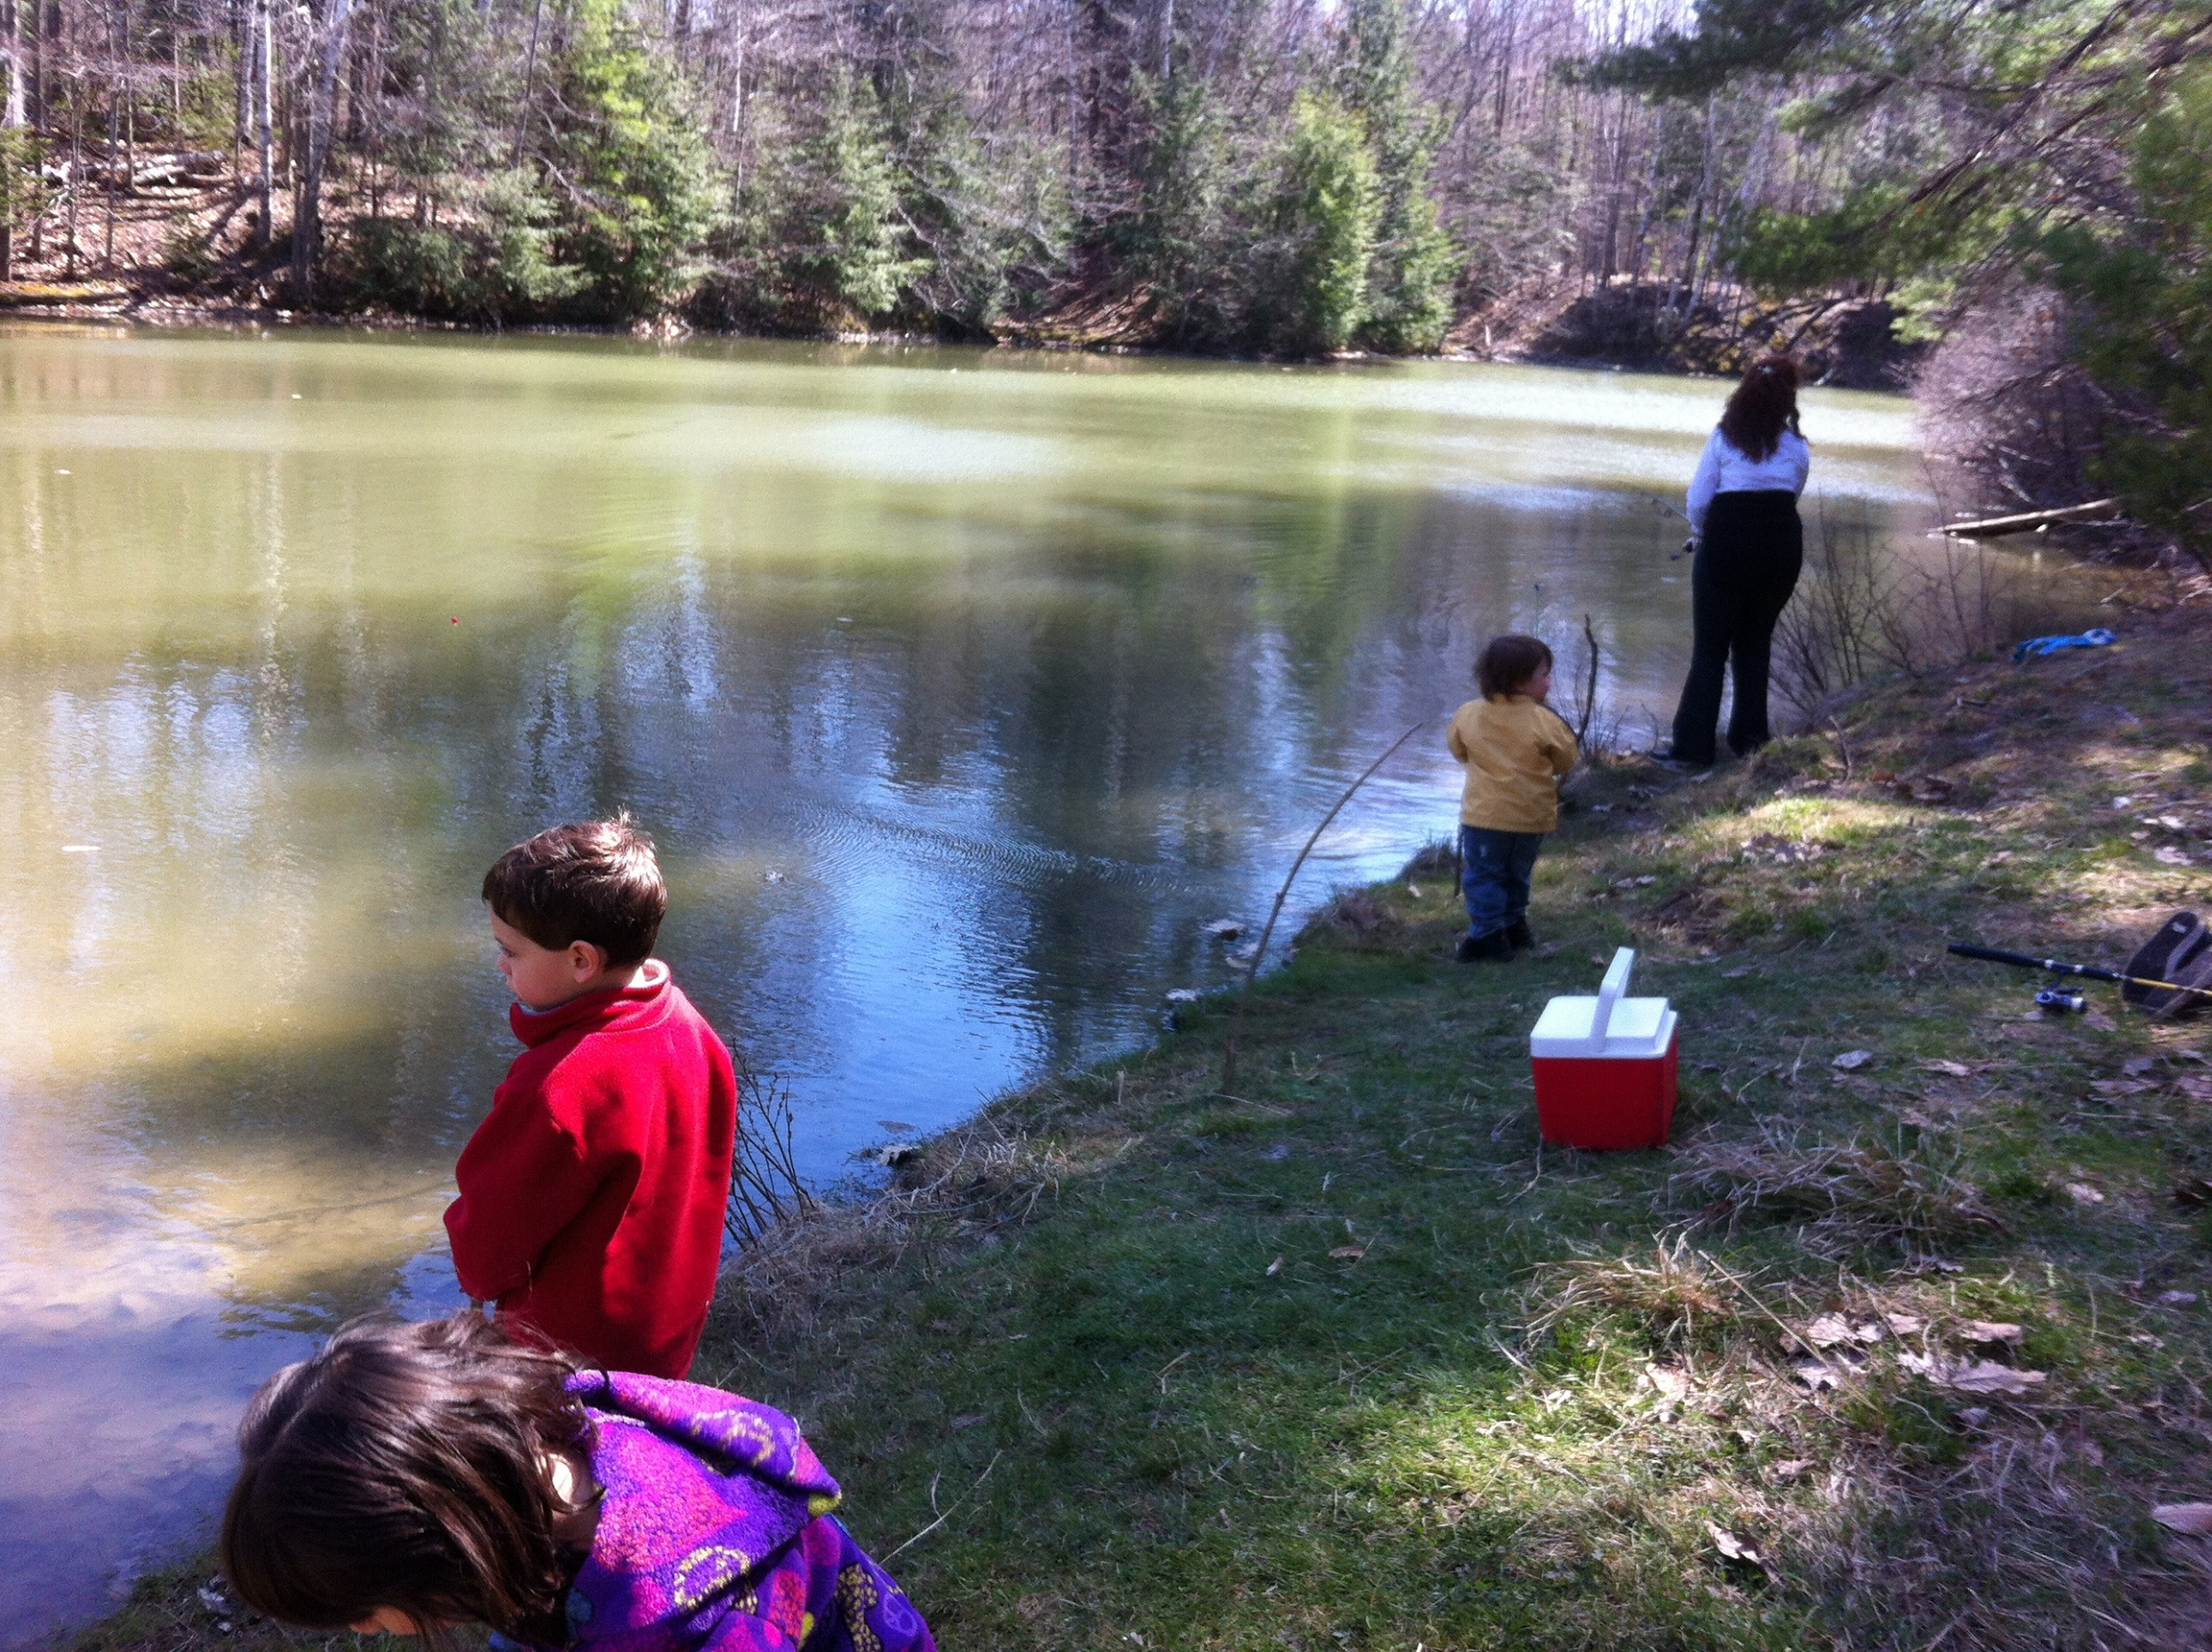 Trout fishing on alden s pond gorham maine april 28 for Fishing jobs in maine